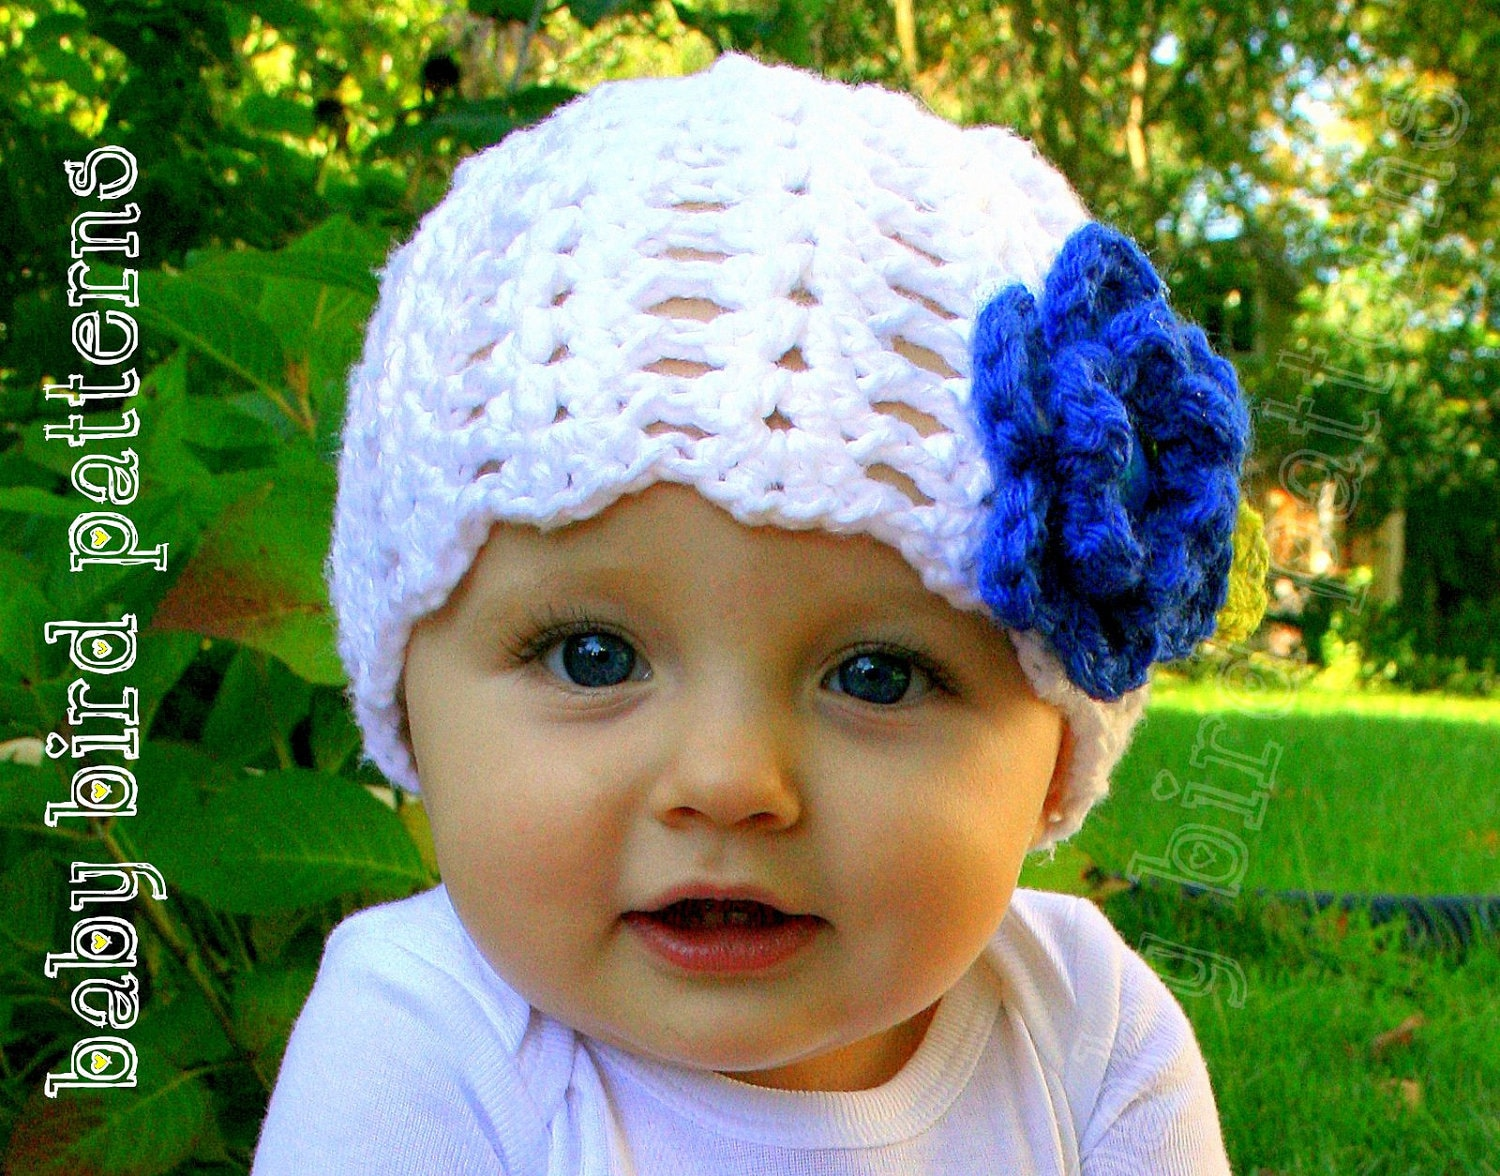 Crochet Patterns Hats For Toddlers : CROCHET PATTERNS FOR KIDS HATS ? Crochet For Beginners